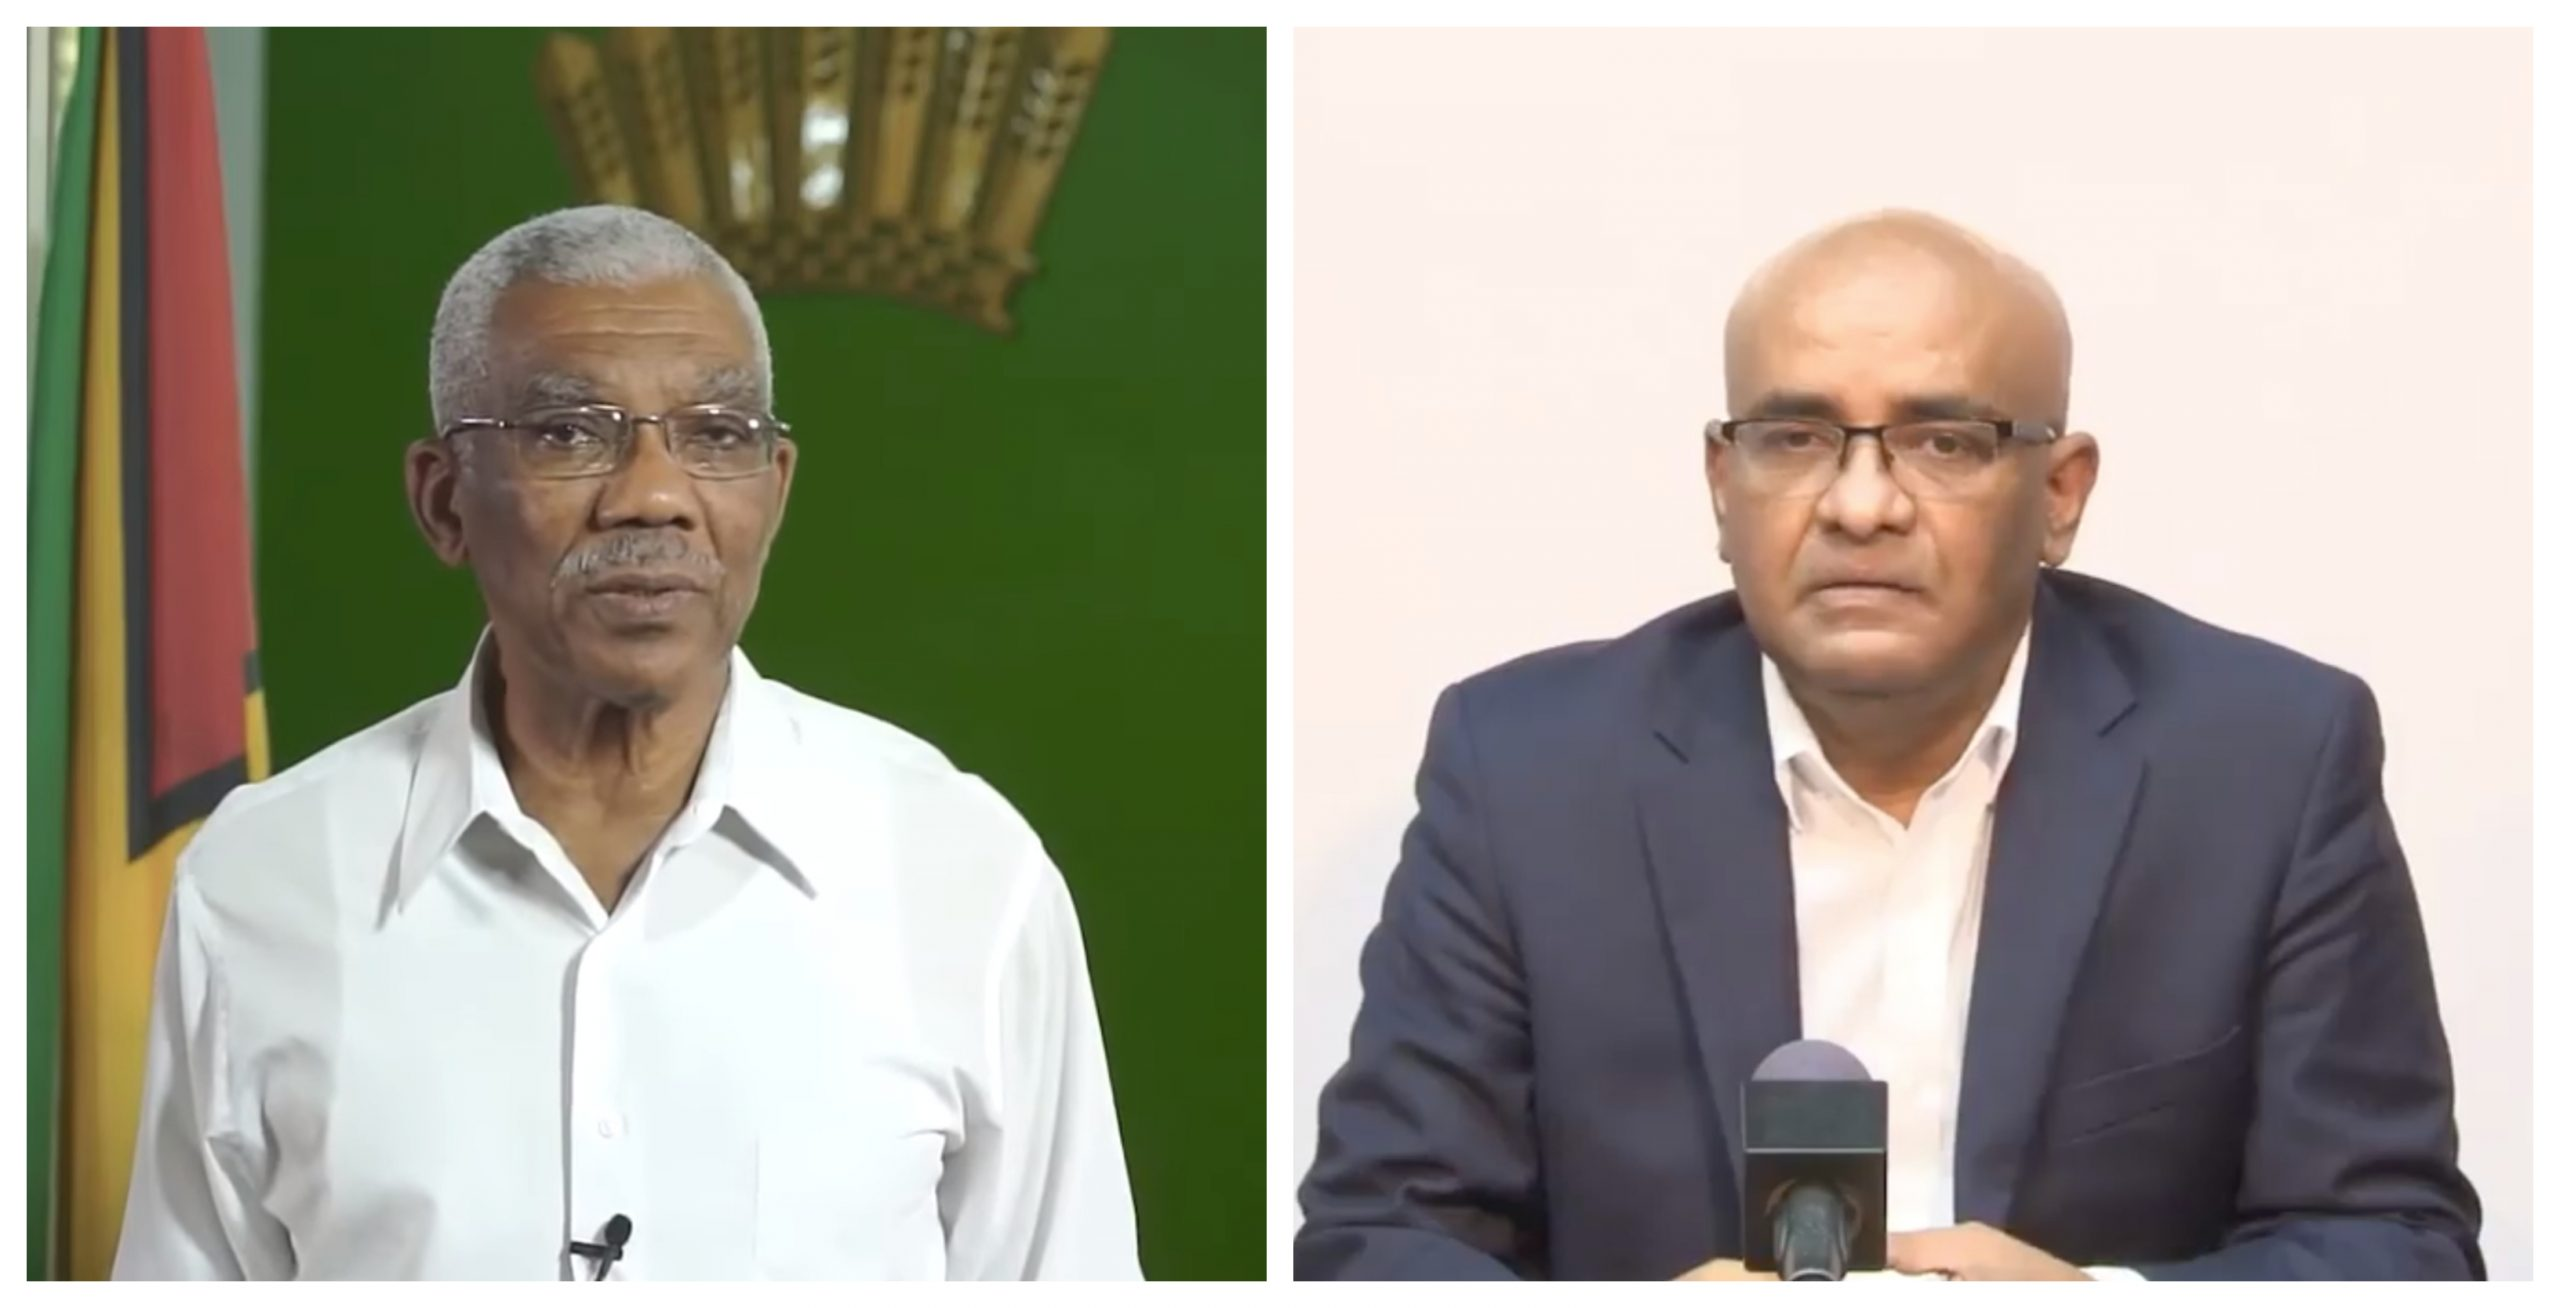 David Granger, caretaker President of Guyana (left) and former President Bharrat Jagdeo.